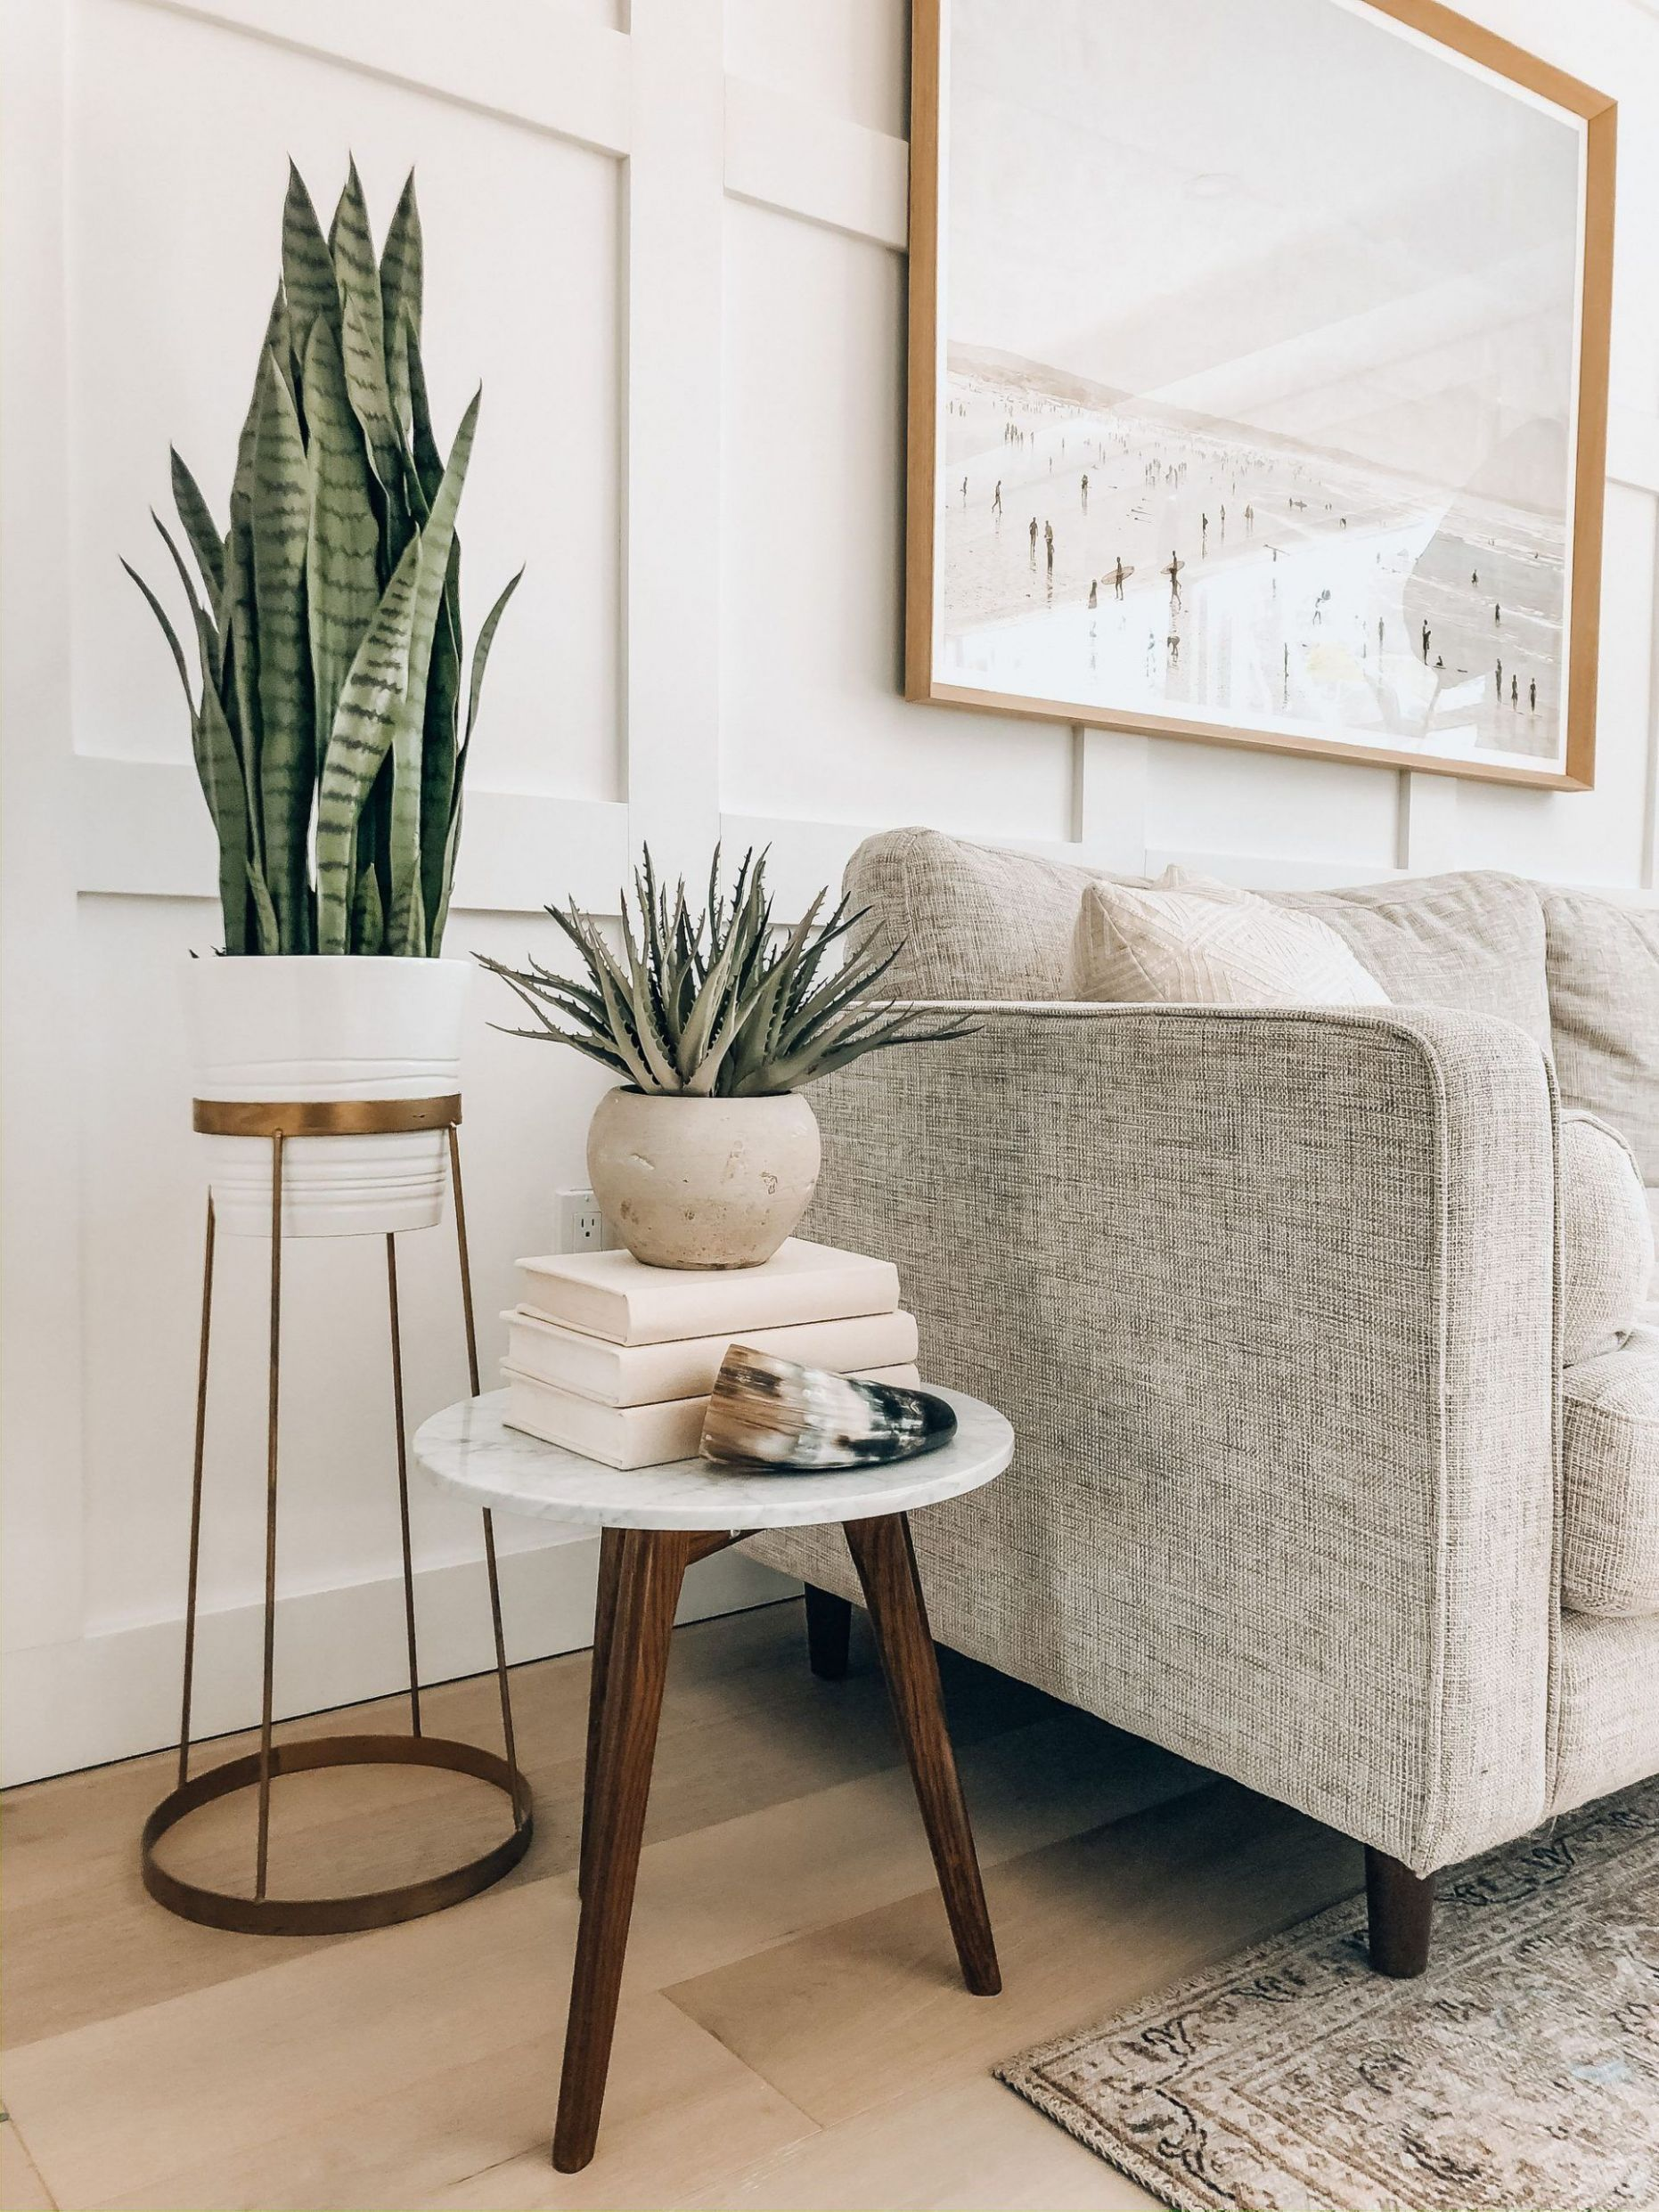 Must Have Coast Living Room Decor Accents in 10 | Decor accents ..